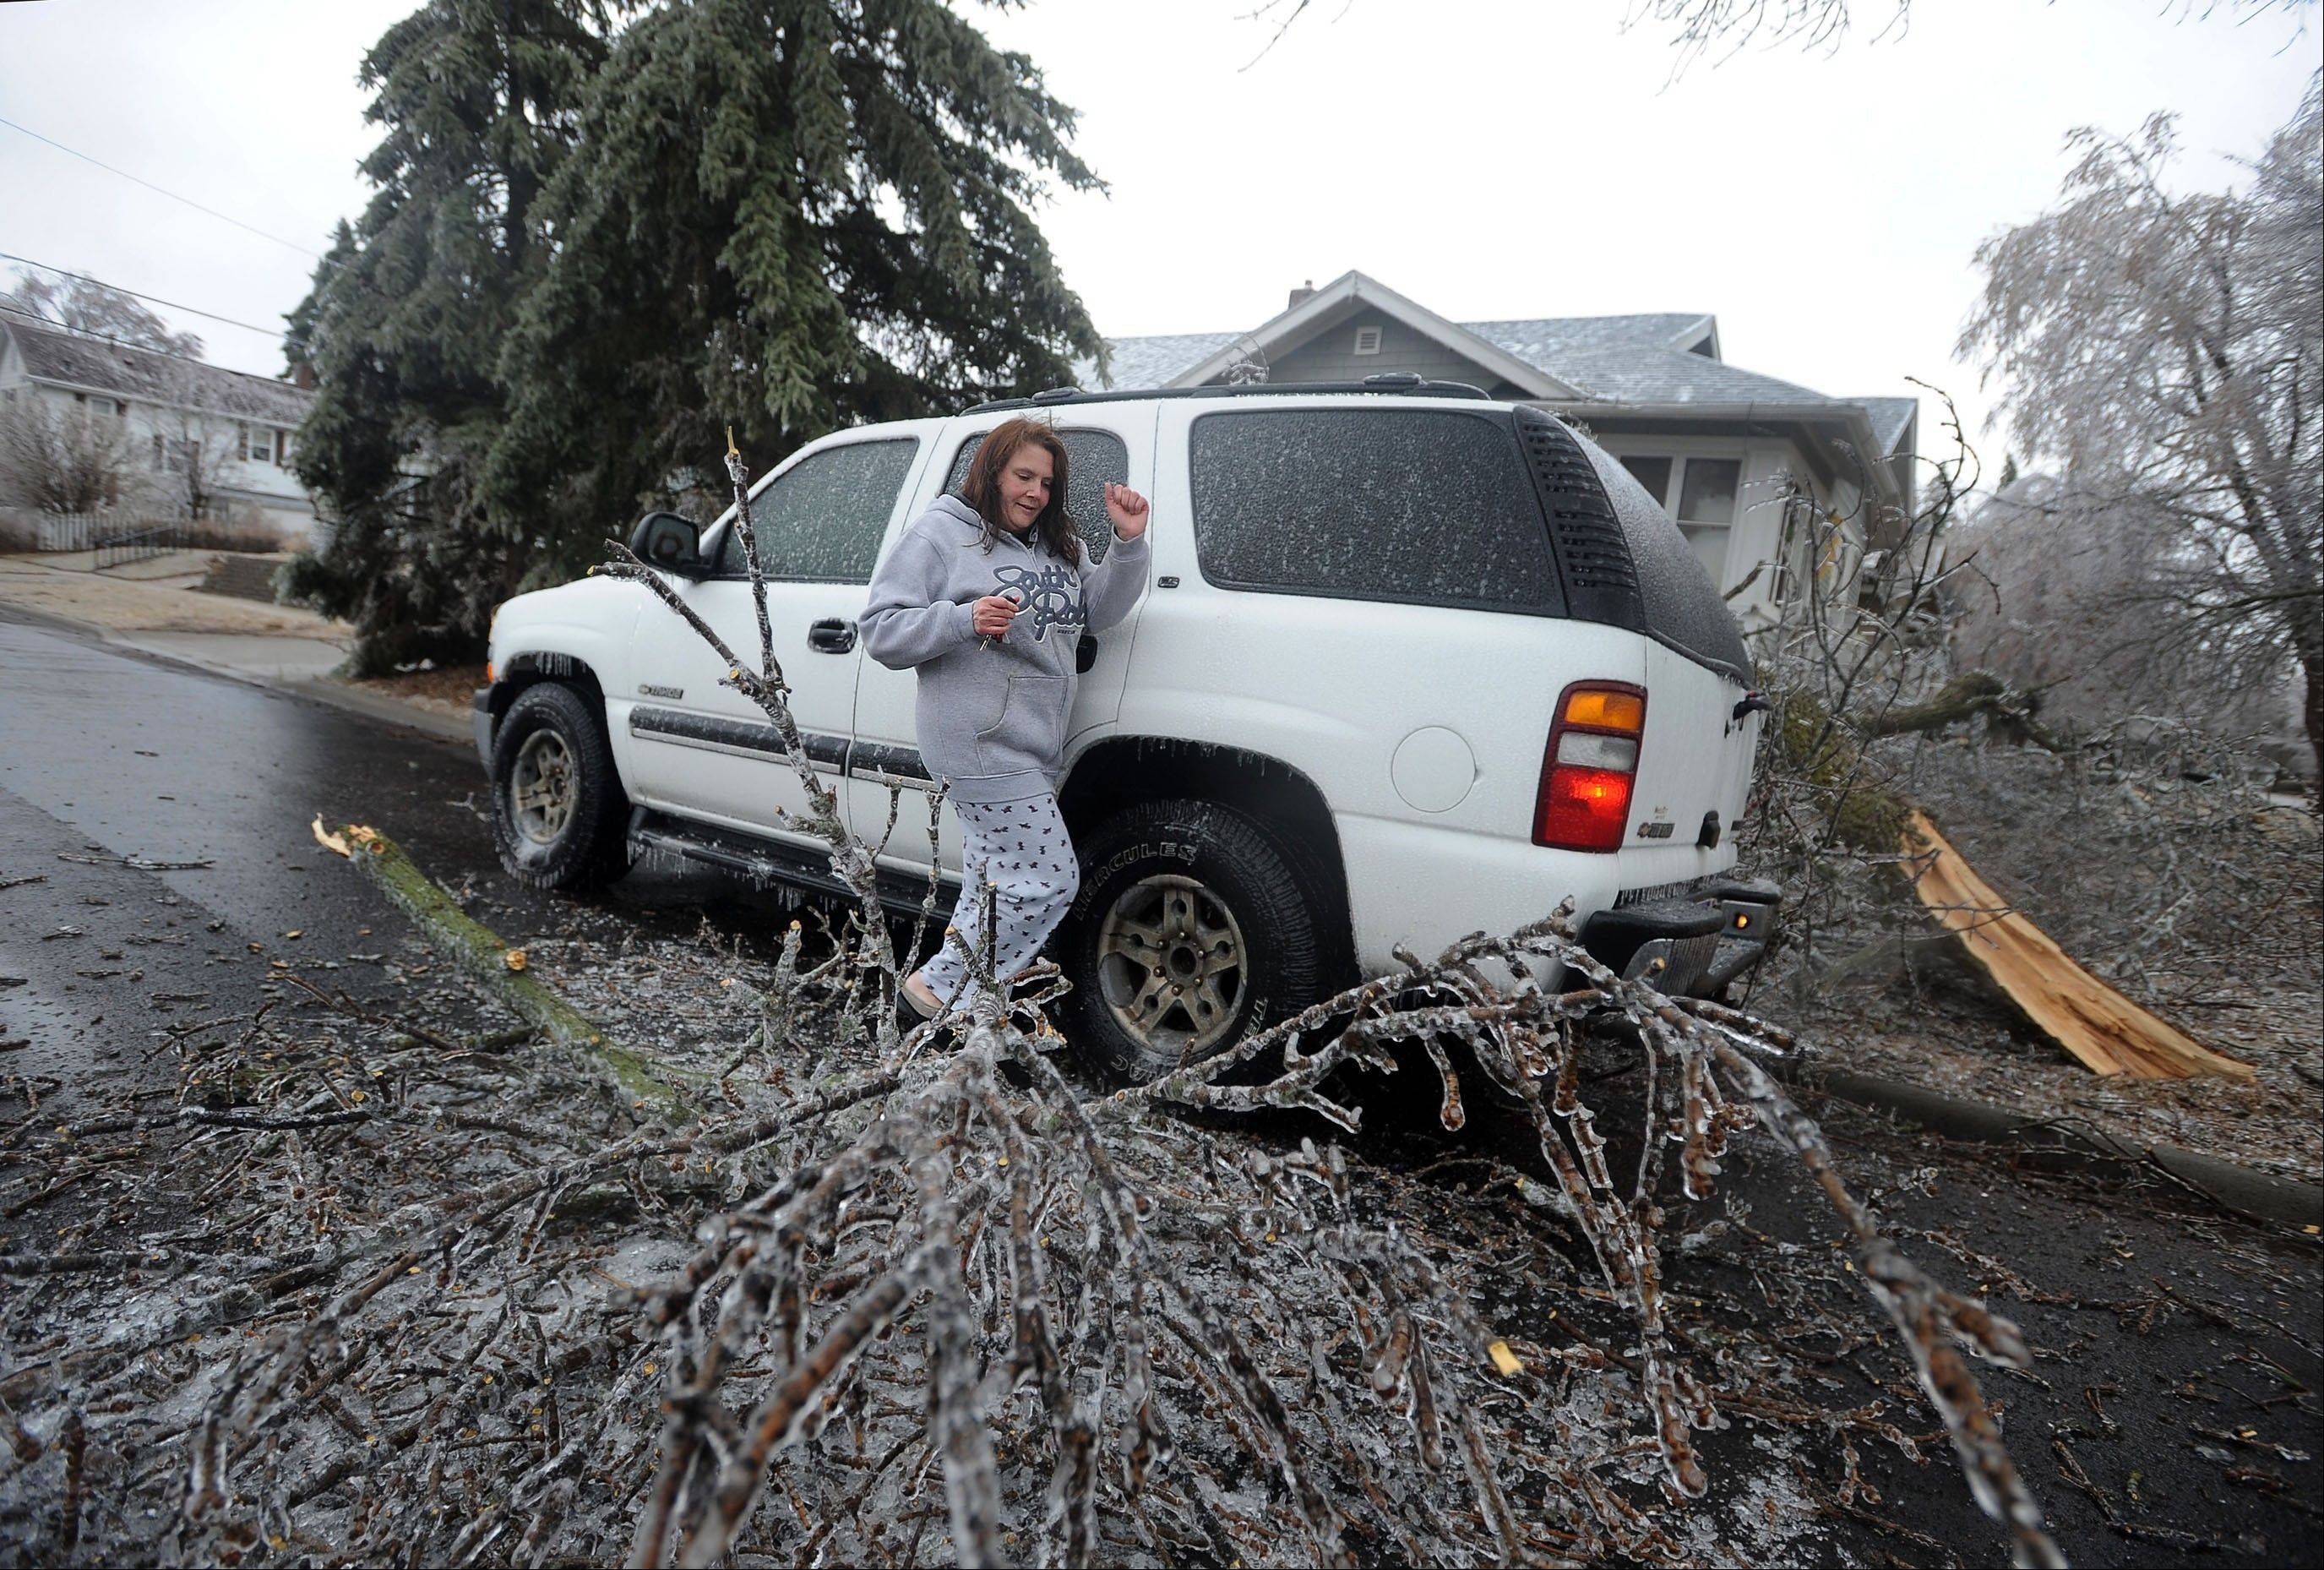 Dianne Dansman maneuvers around a fallen tree that came inches away from falling on her SUV on Tuesday, April 9, 2013 in Sioux Falls, S.D. Freezing rain in the morning downed trees and caused power outages throughout the city.